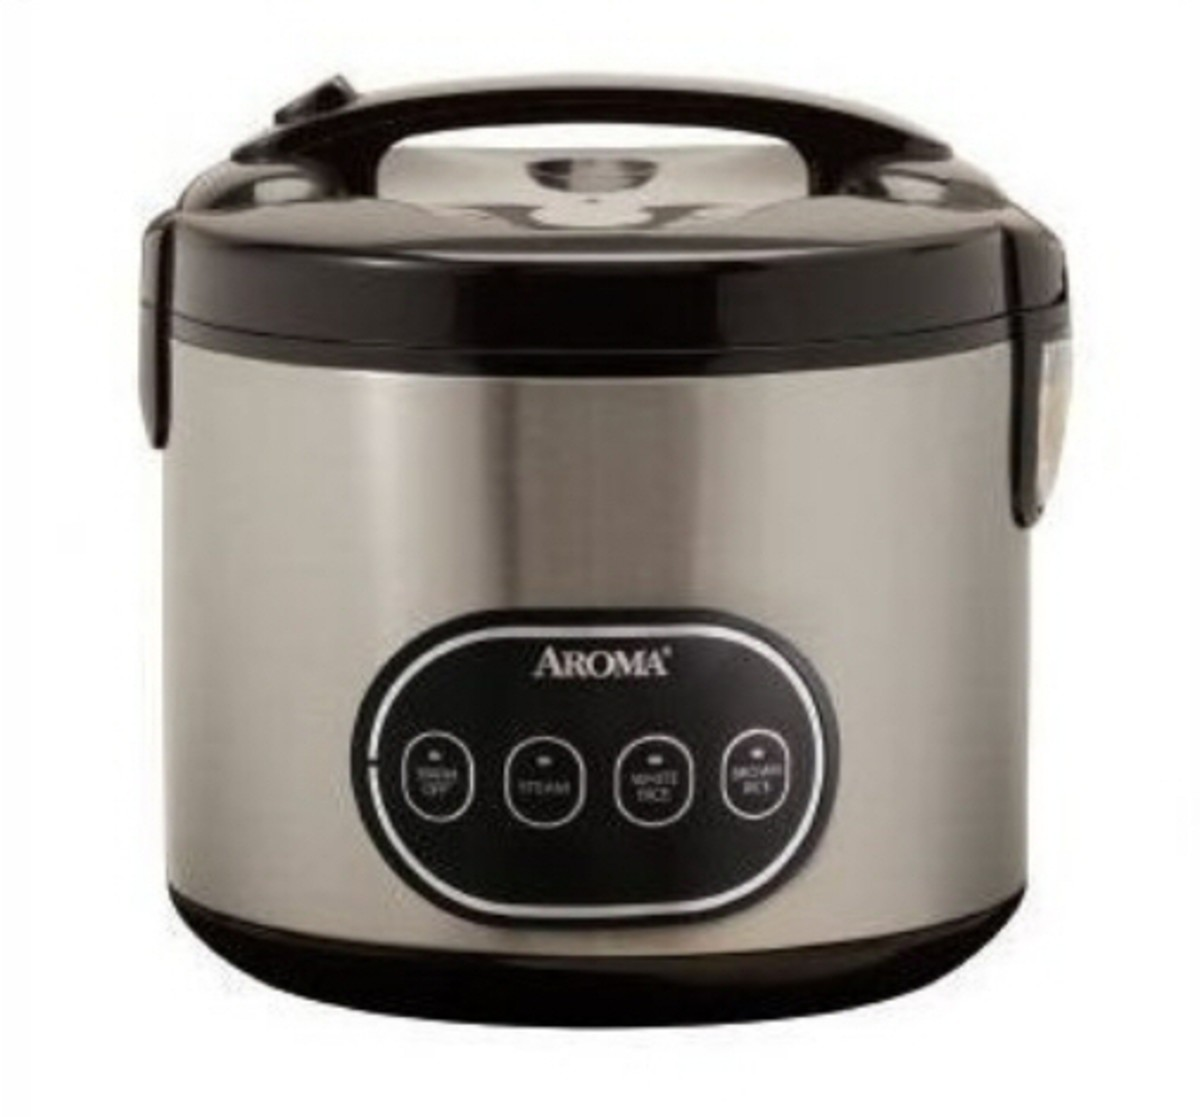 Aroma Rice Cooker User Manual